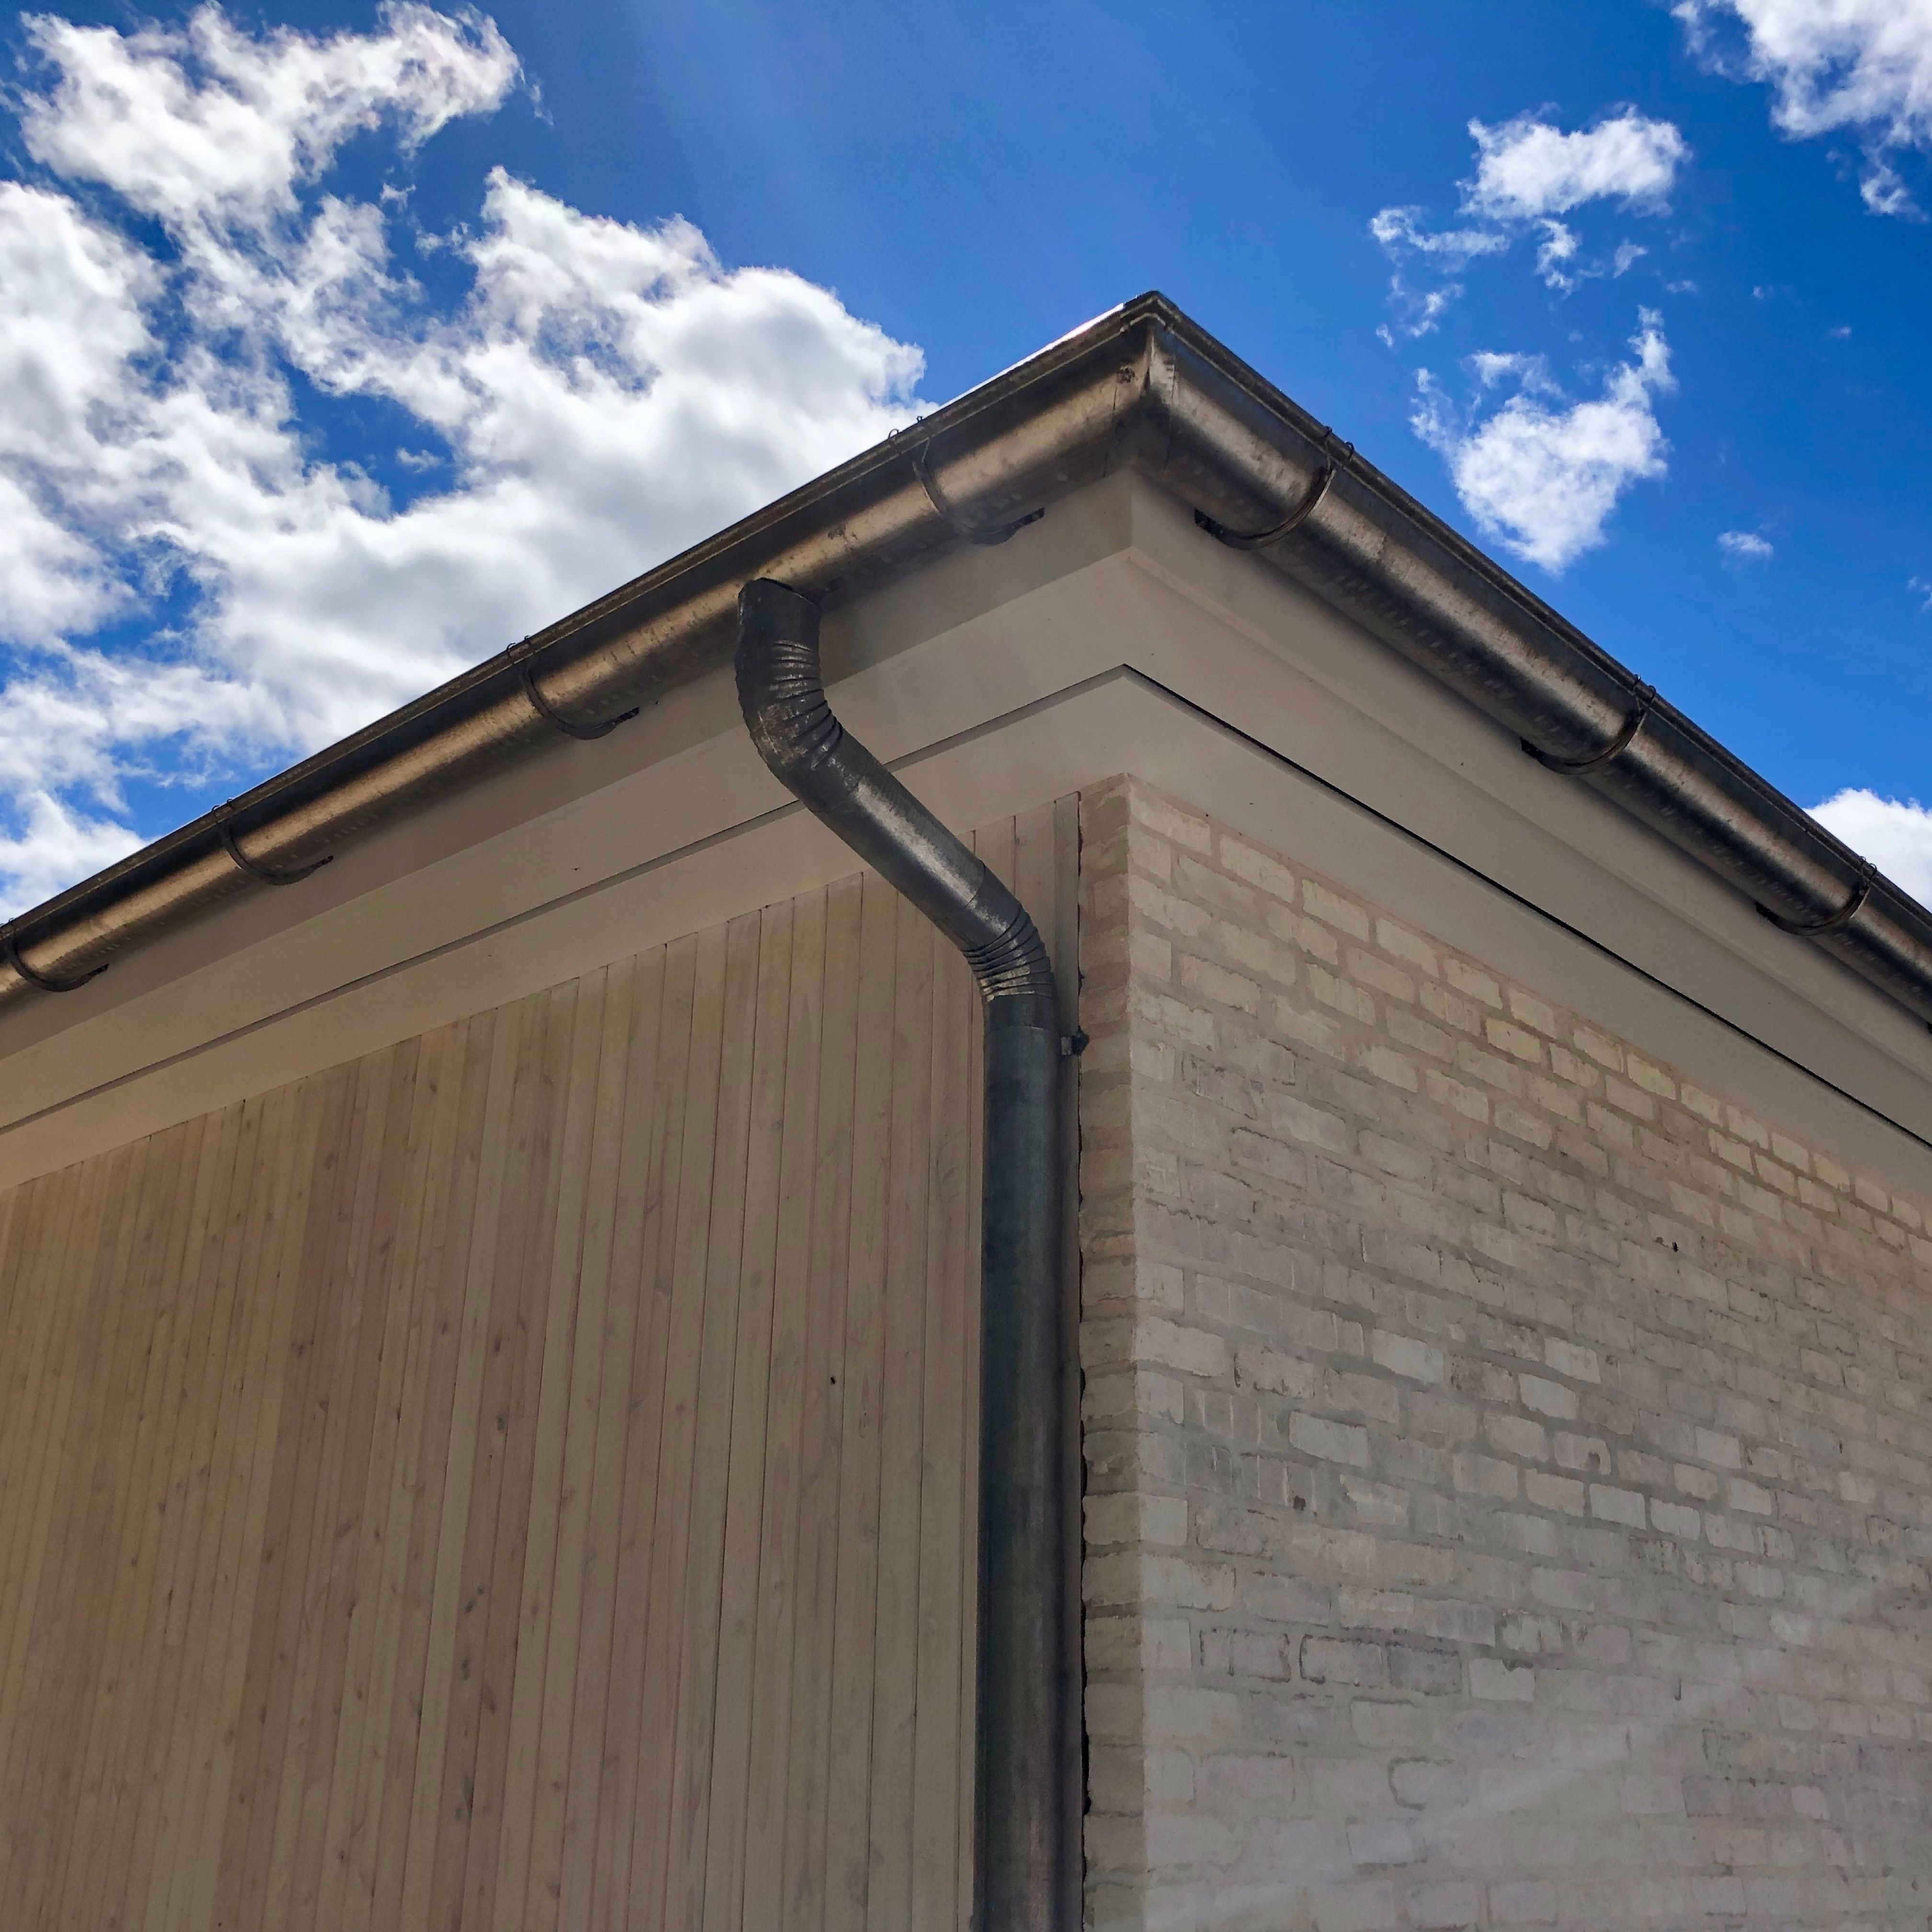 Lead Coated Copper Gutters Seamless Gutters Gutters How To Install Gutters